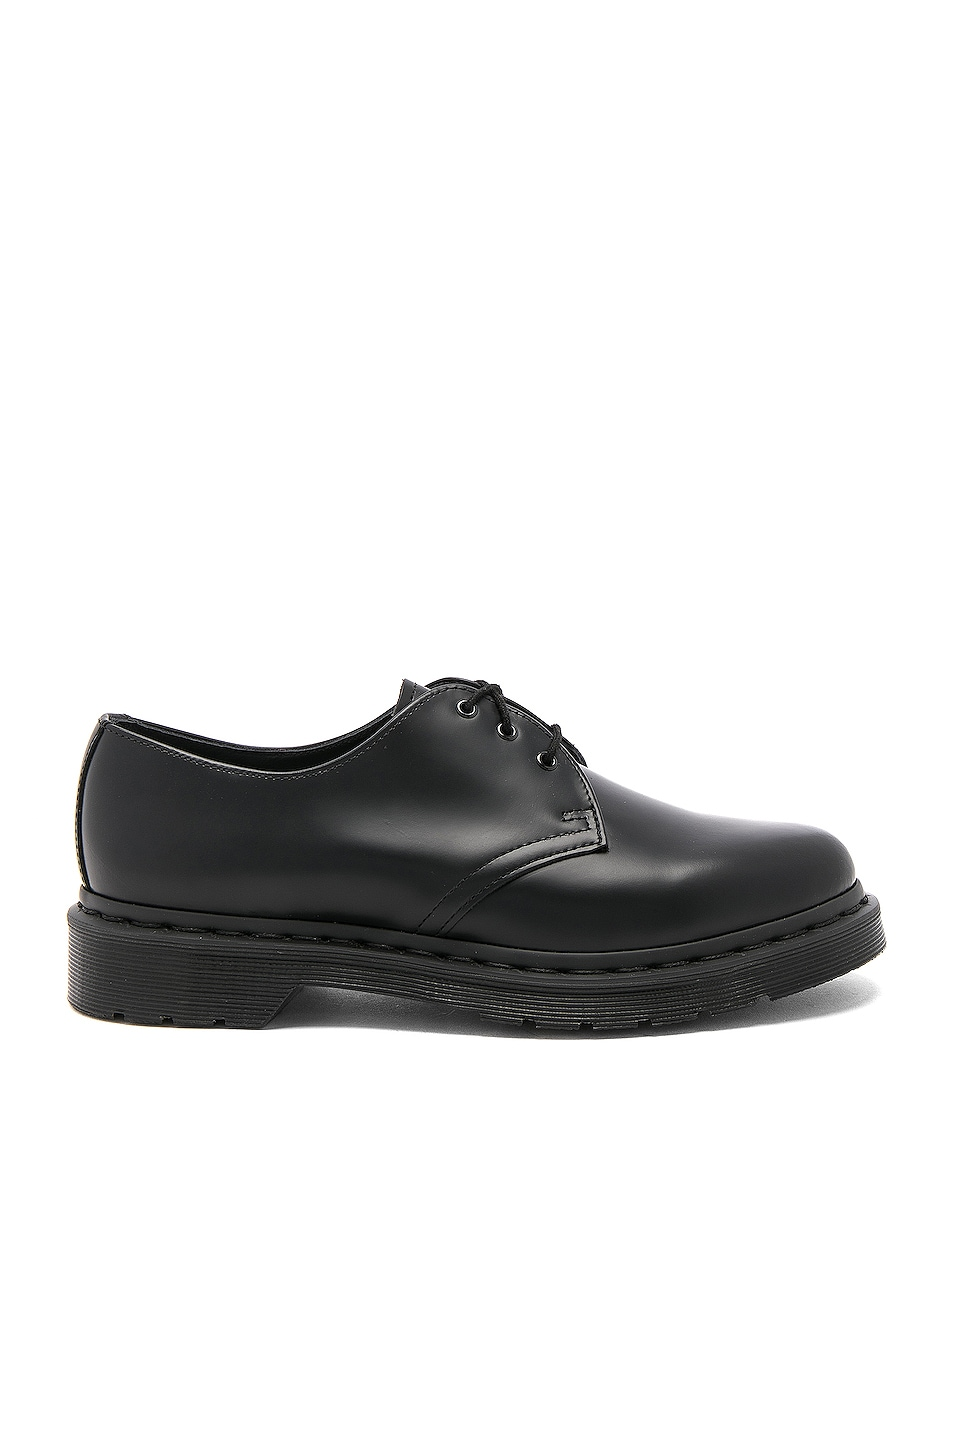 1645cacebc746f Image 1 of Dr. Martens 1461 3 Eye Gibson in Black Mono